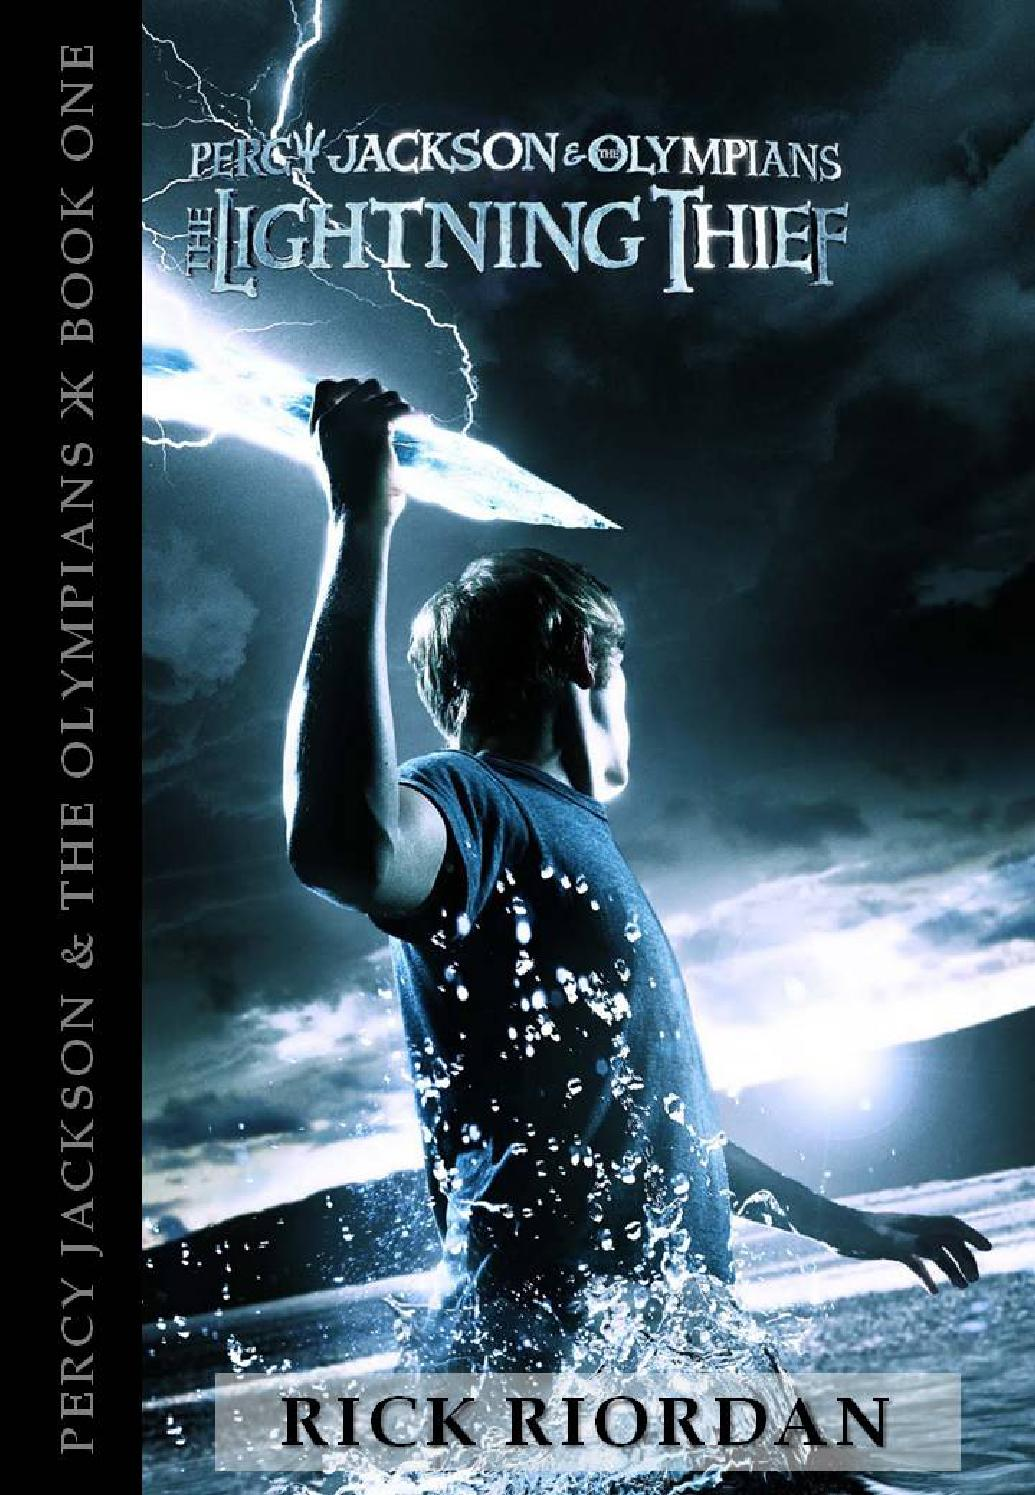 Percy jackson and the olympians 1 the lightning thief by luca percy jackson and the olympians 1 the lightning thief by luca ugalde issuu izmirmasajfo